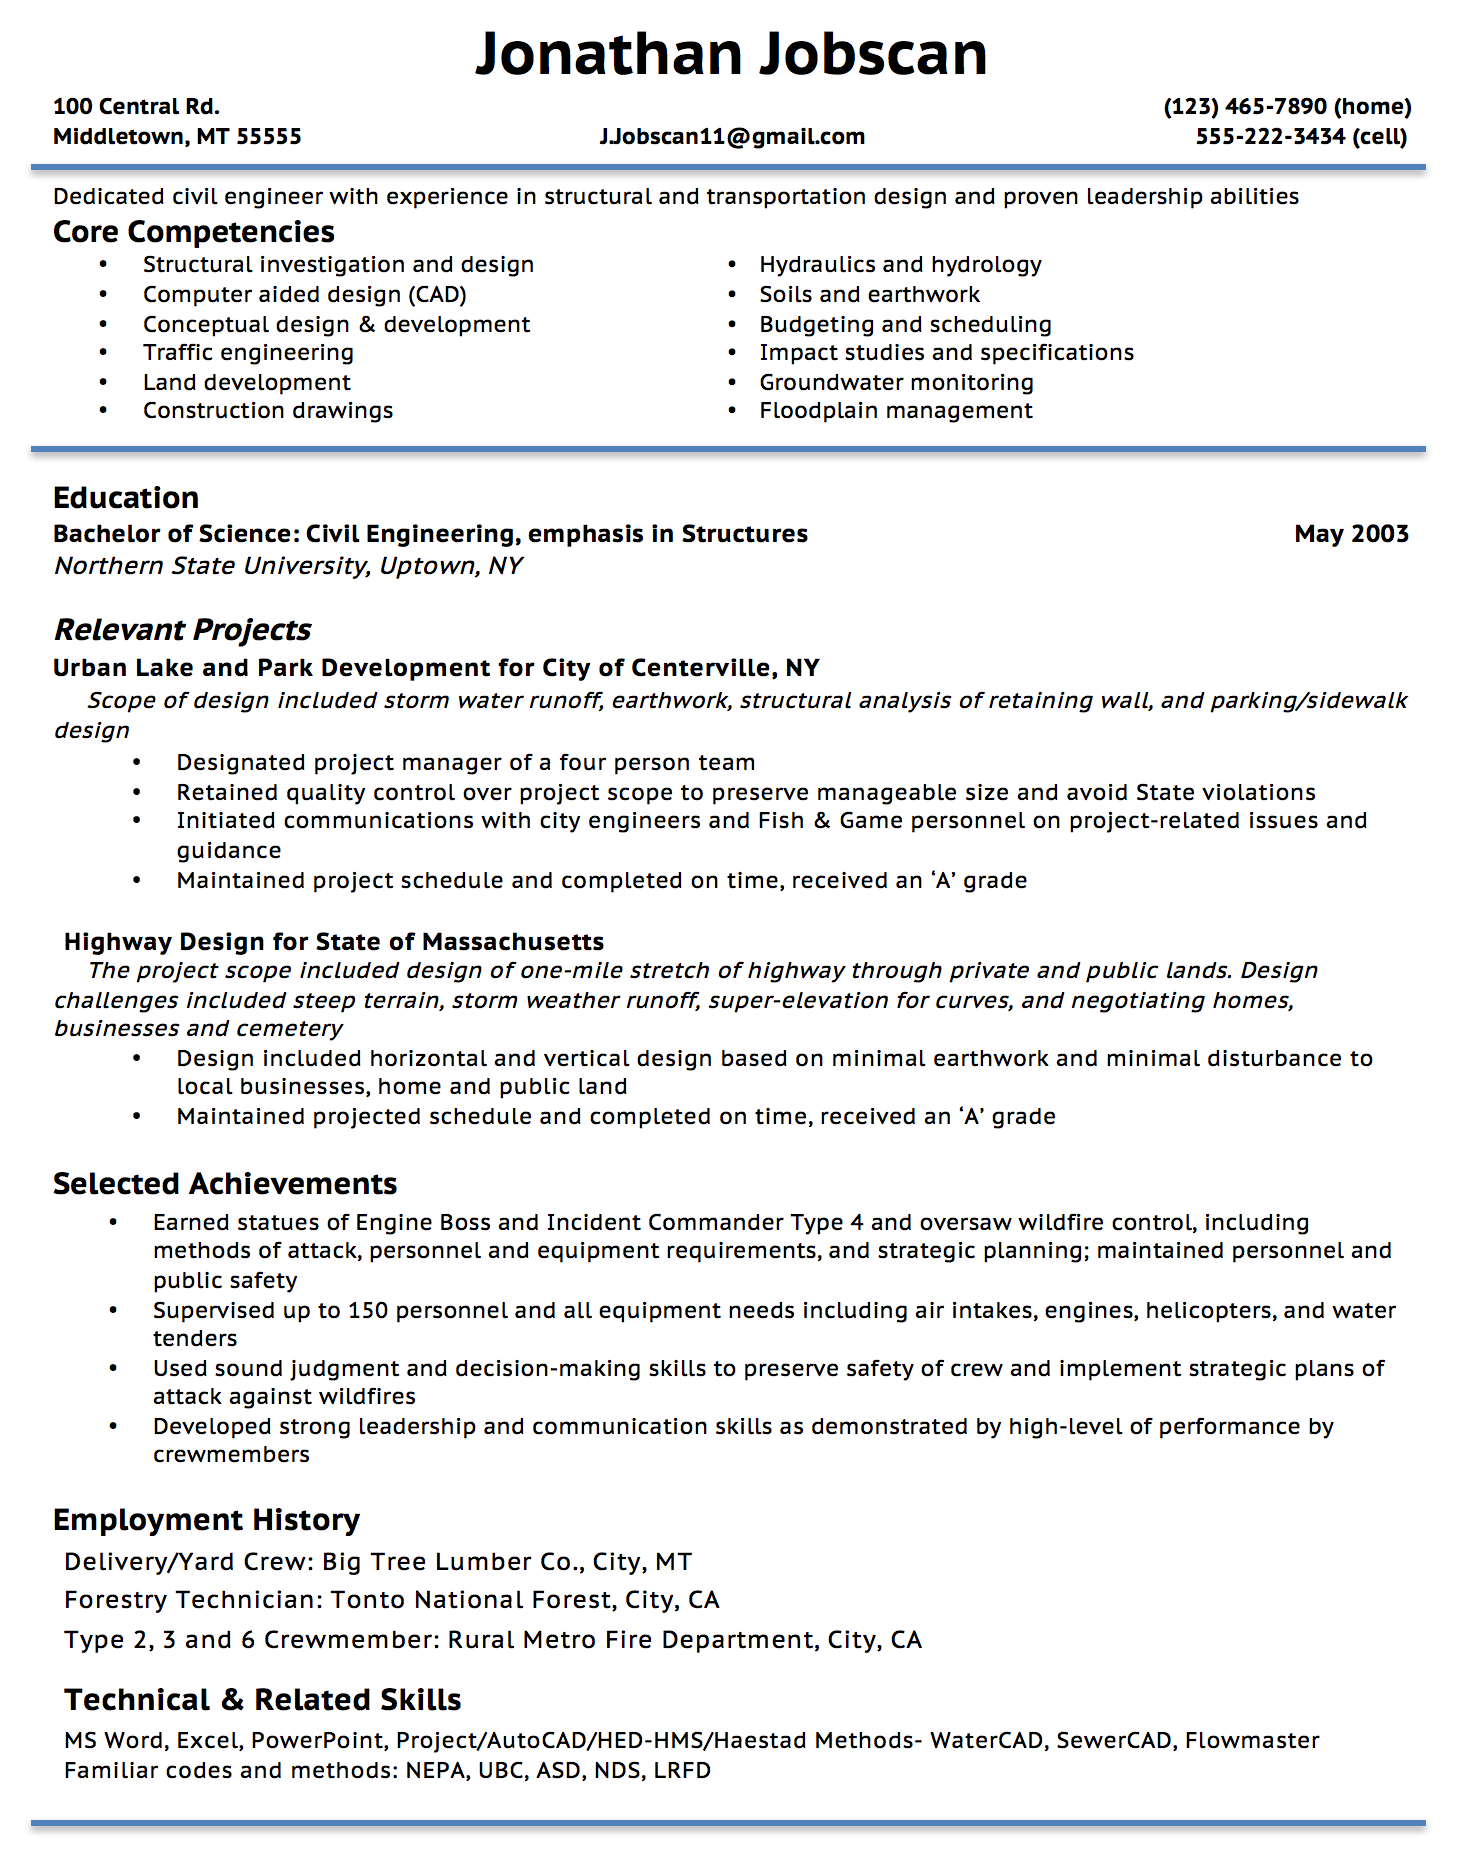 Opposenewapstandardsus  Personable Resume Writing Guide  Jobscan With Hot Example Of A Functional Resume Format With Adorable Latex Resume Template Phd Also Create My Free Resume In Addition Wharton Resume Template And Controller Resume Examples As Well As How To Do A College Resume Additionally How To Write A Reference Page For A Resume From Jobscanco With Opposenewapstandardsus  Hot Resume Writing Guide  Jobscan With Adorable Example Of A Functional Resume Format And Personable Latex Resume Template Phd Also Create My Free Resume In Addition Wharton Resume Template From Jobscanco